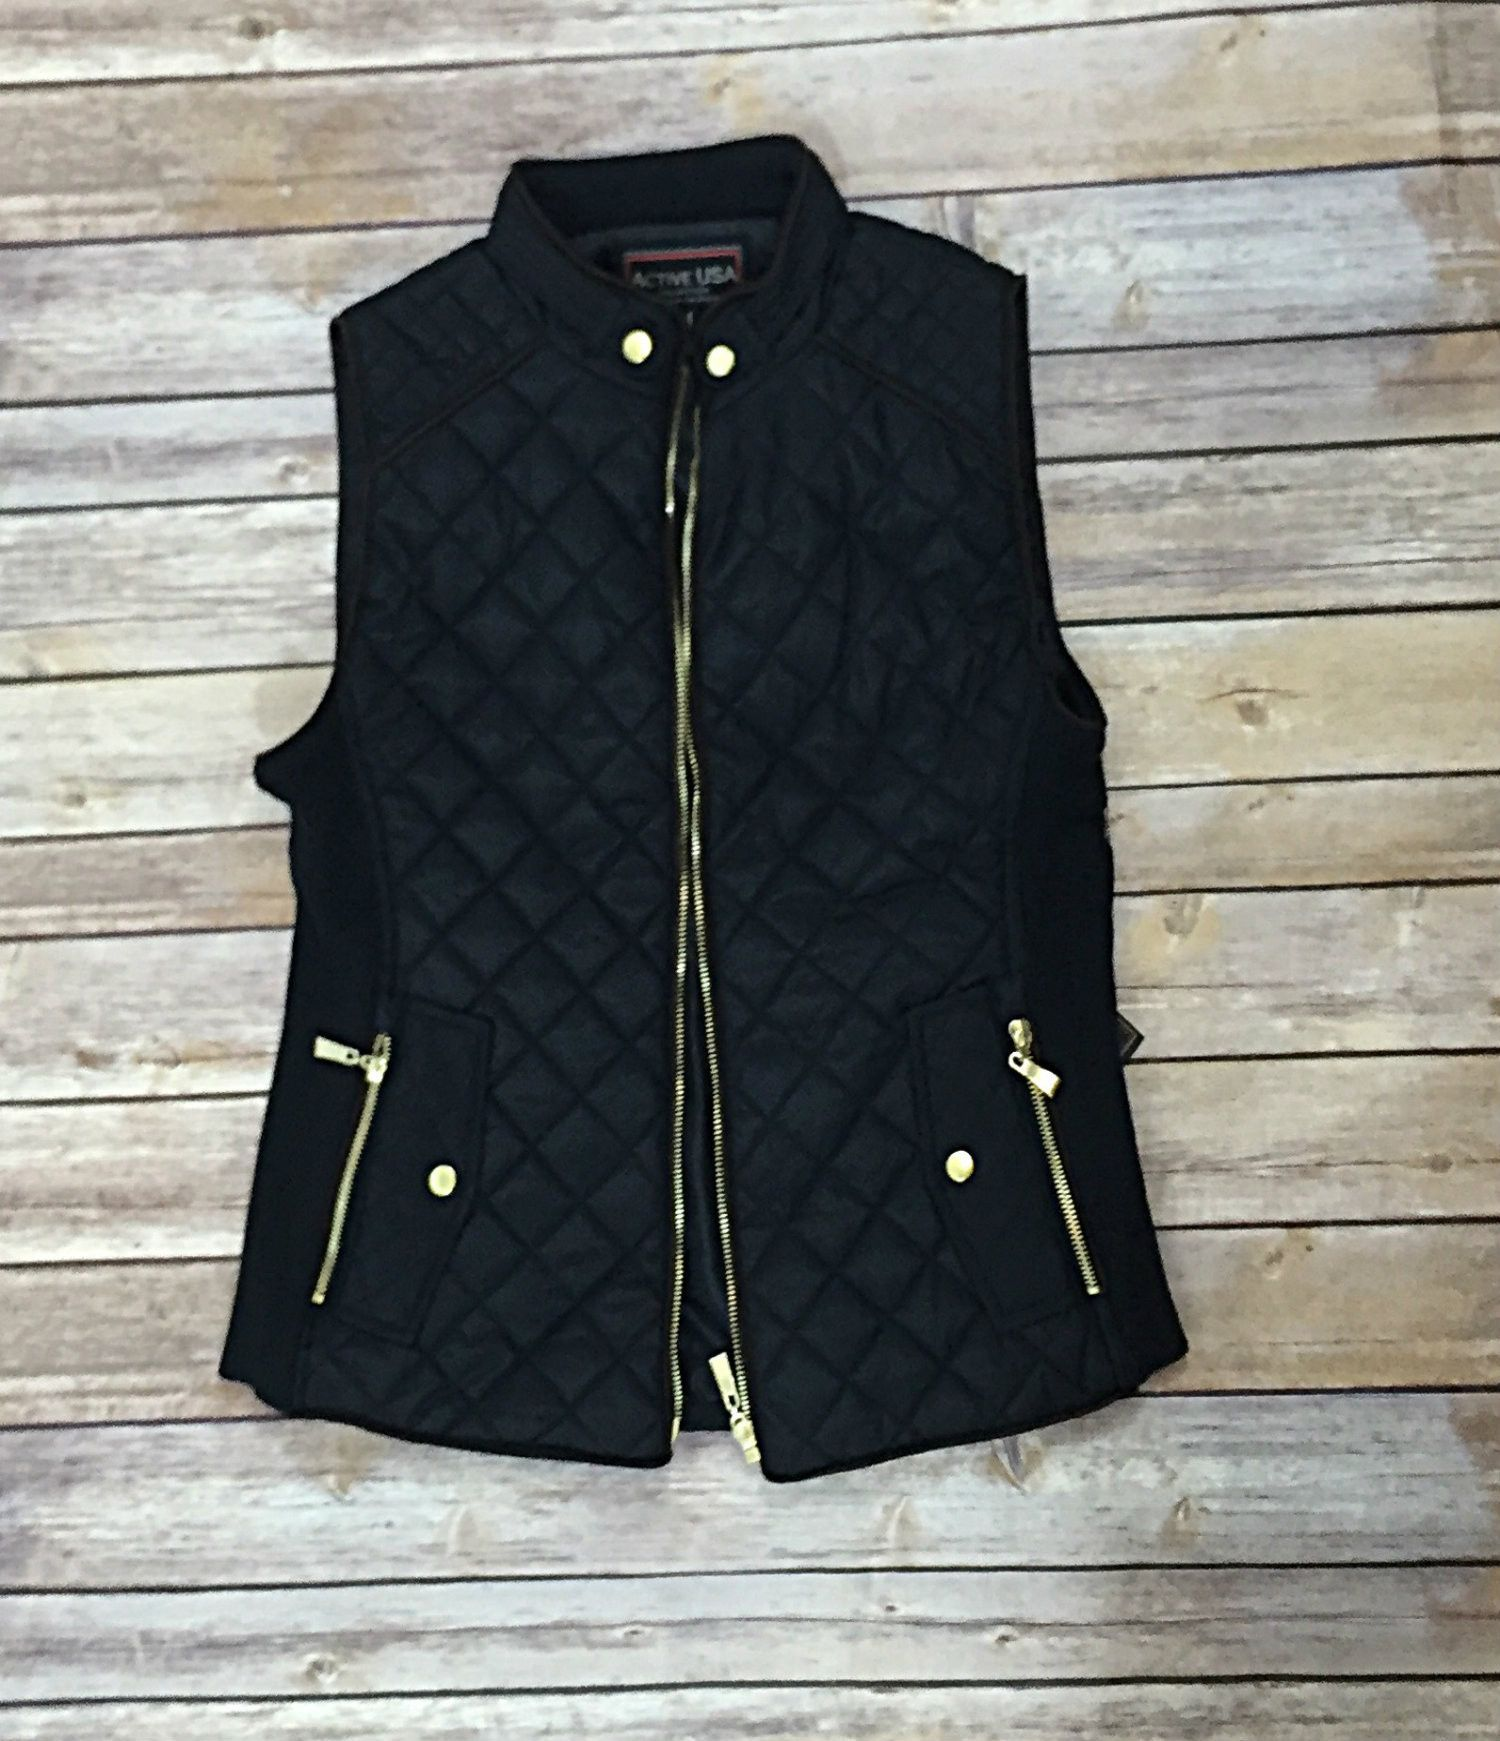 Black Quilted Vest with Gold accents